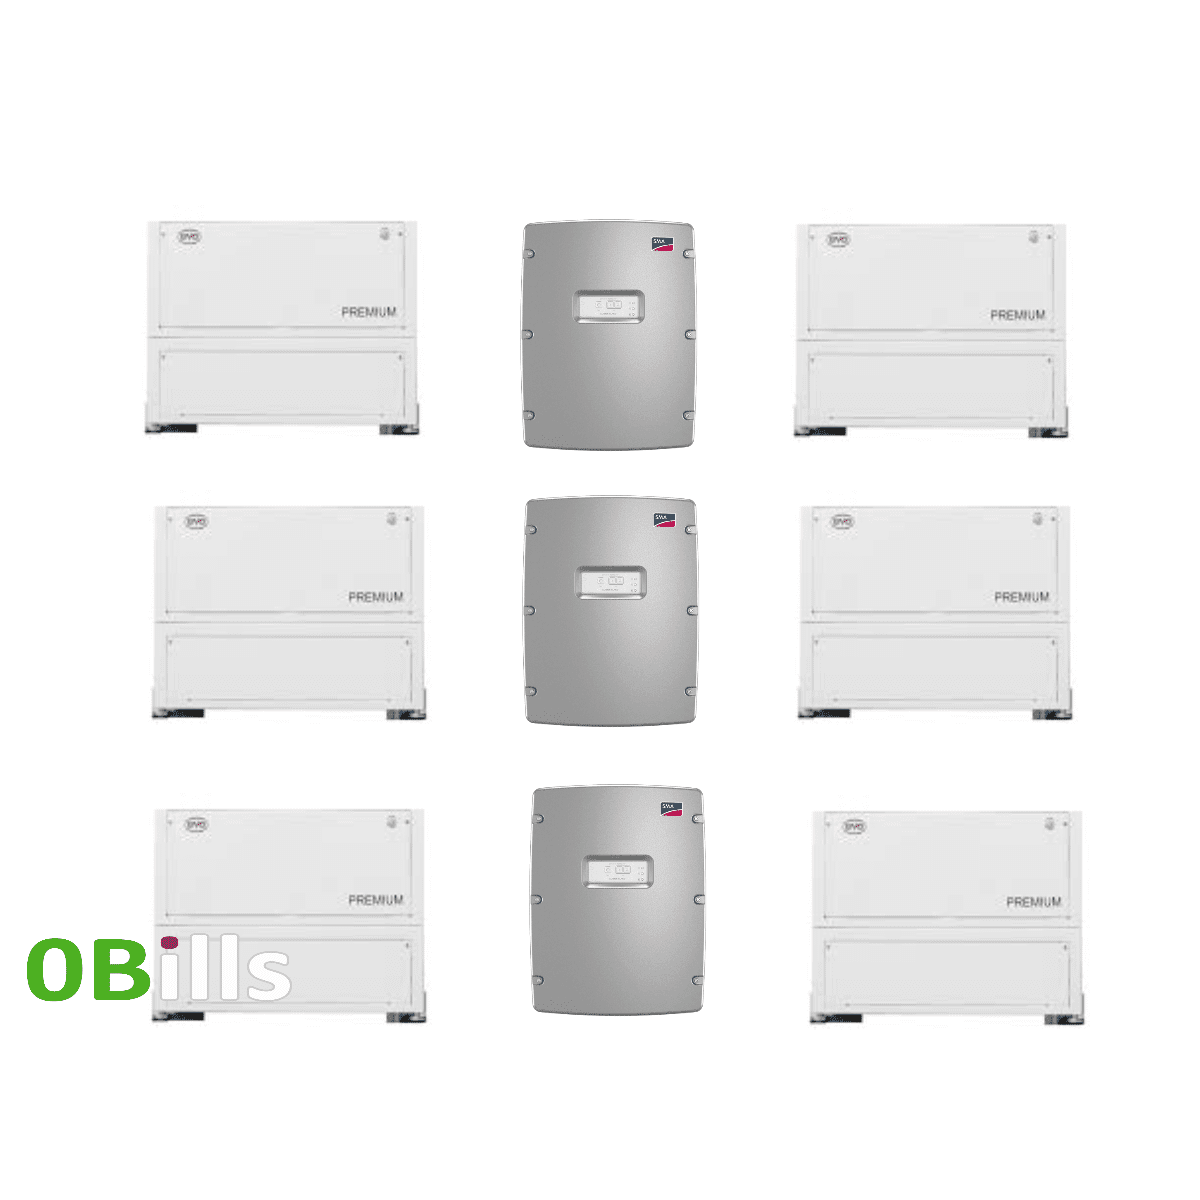 BYD LVL 92.16kWh Lithium-Ion Solar Battery Storage System